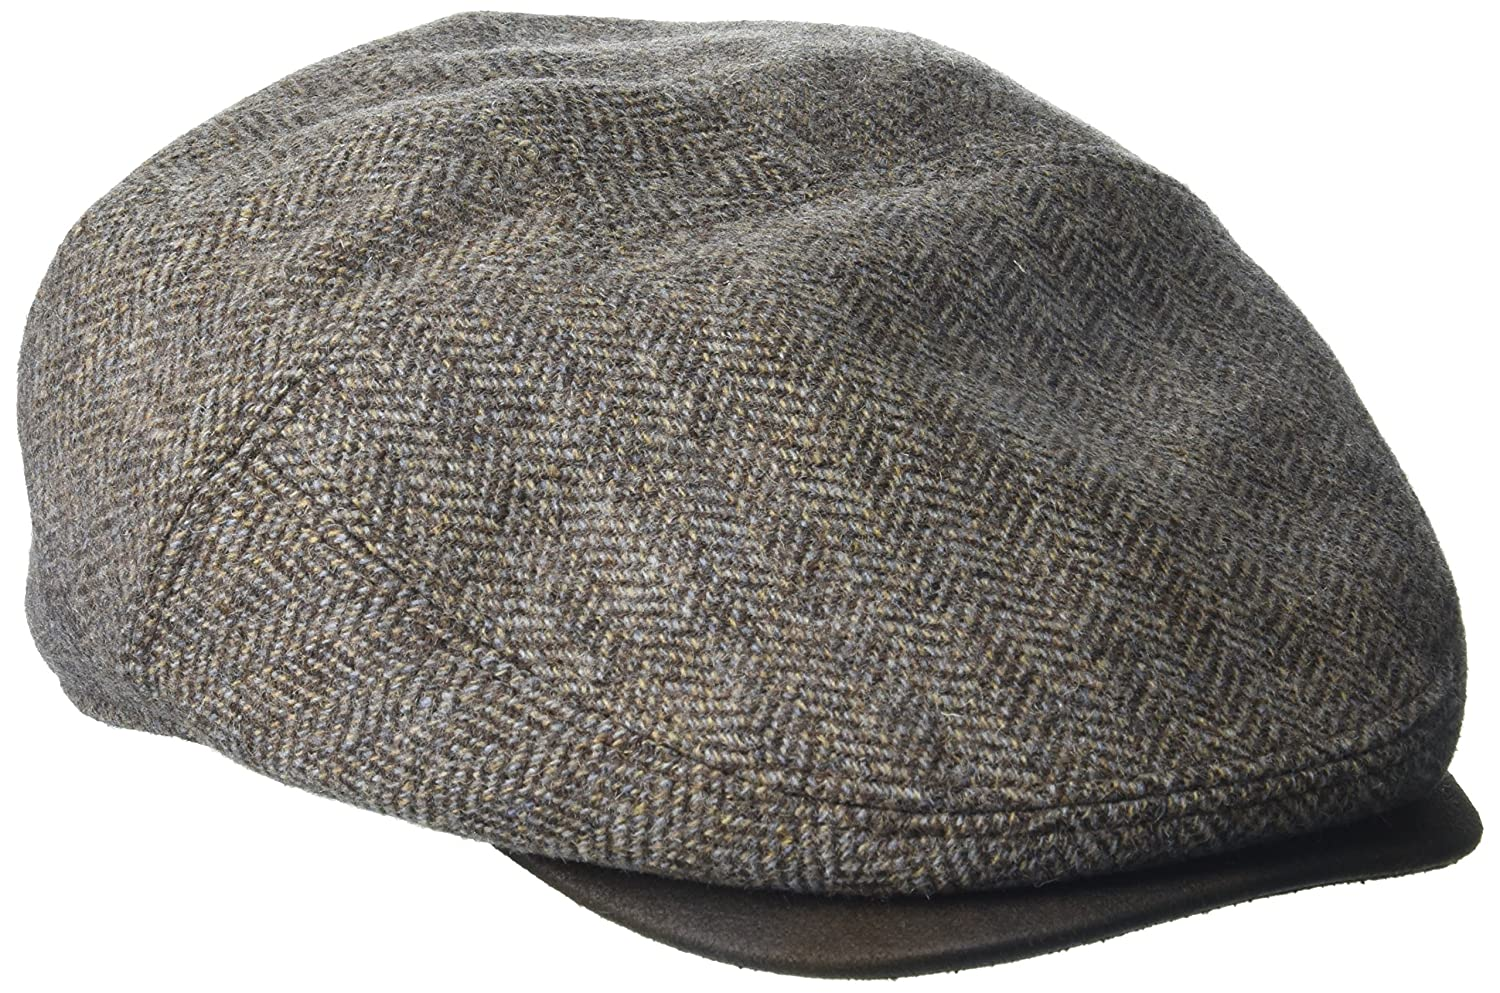 Henschel Mens Herringbone New Shape Ivy Hat with Suede Visor Henschel Headwear Child Code 4511